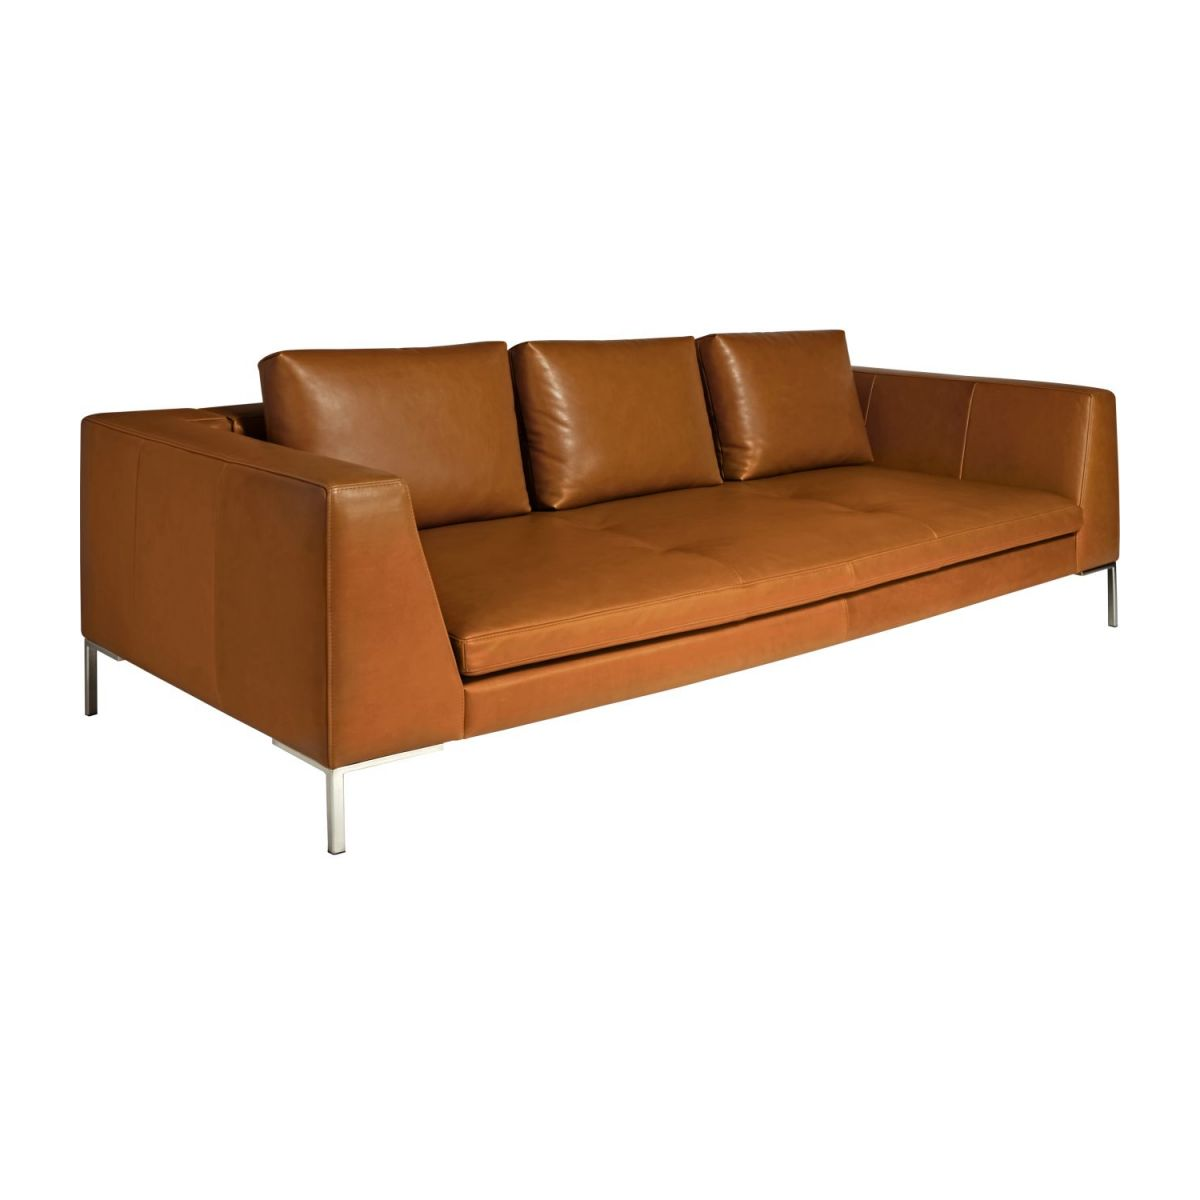 Habitat Sofa Montino 3 Seater Sofa In Vintage Aniline Leather Old Chestnut